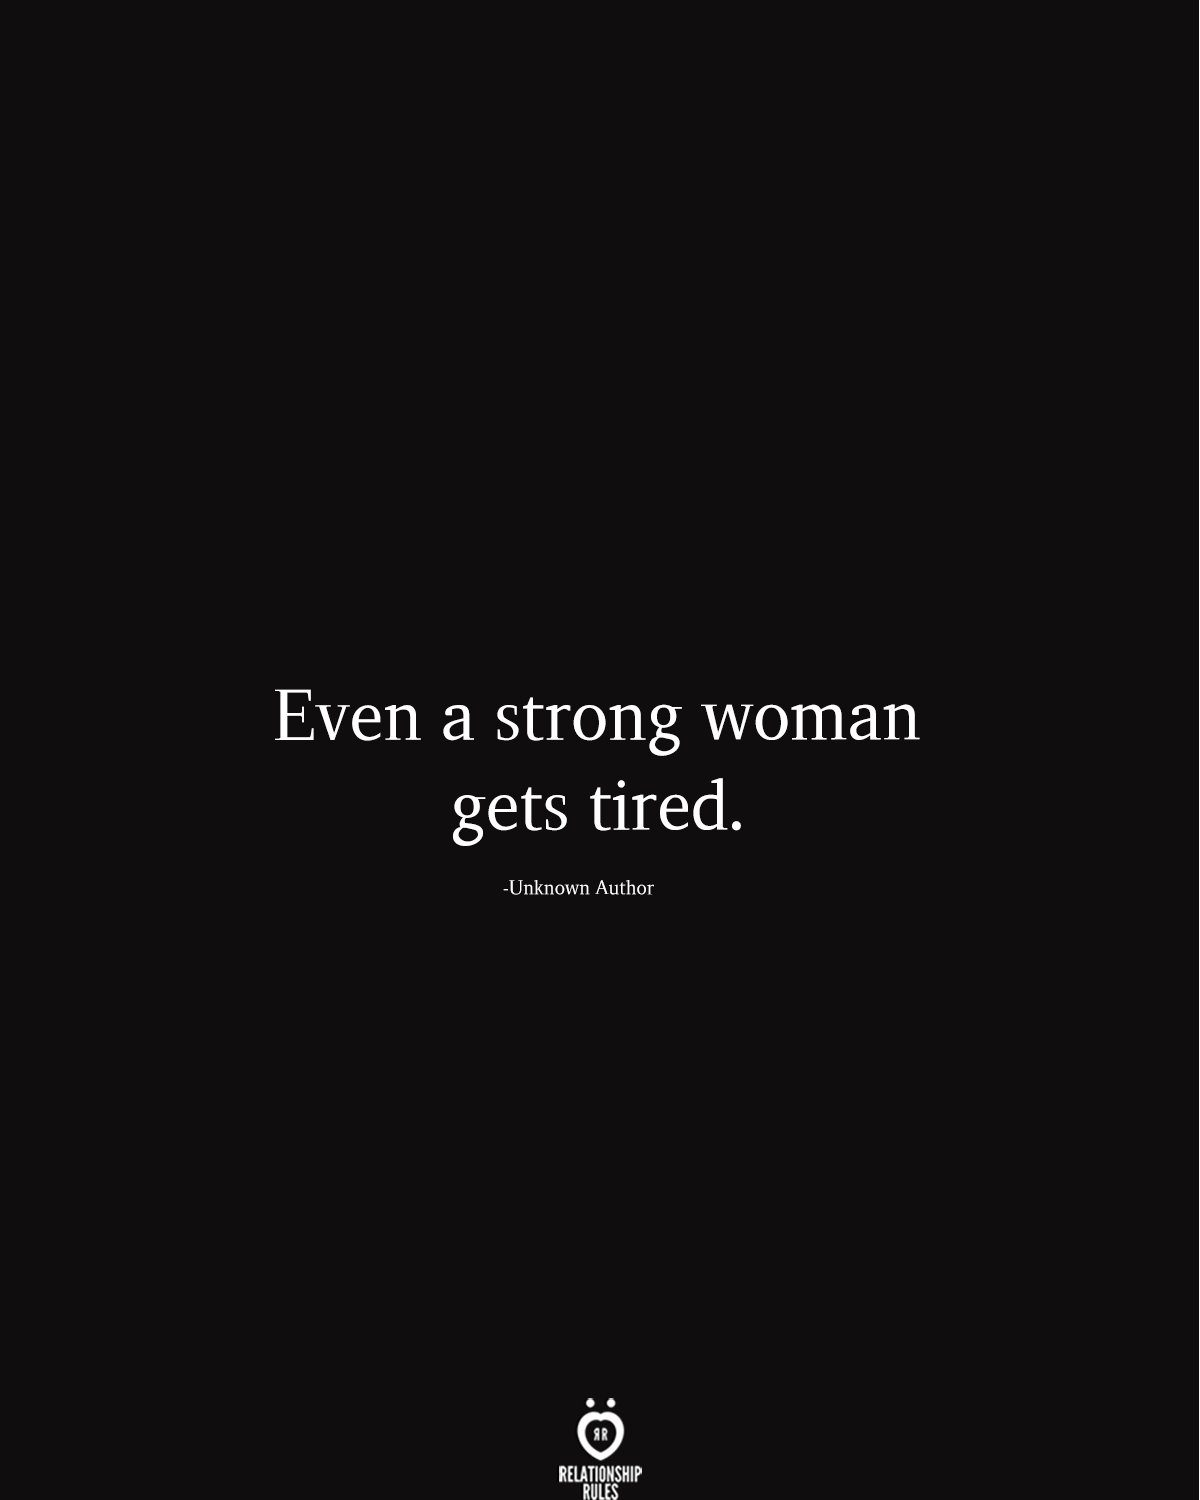 Even a strong woman gets tired.